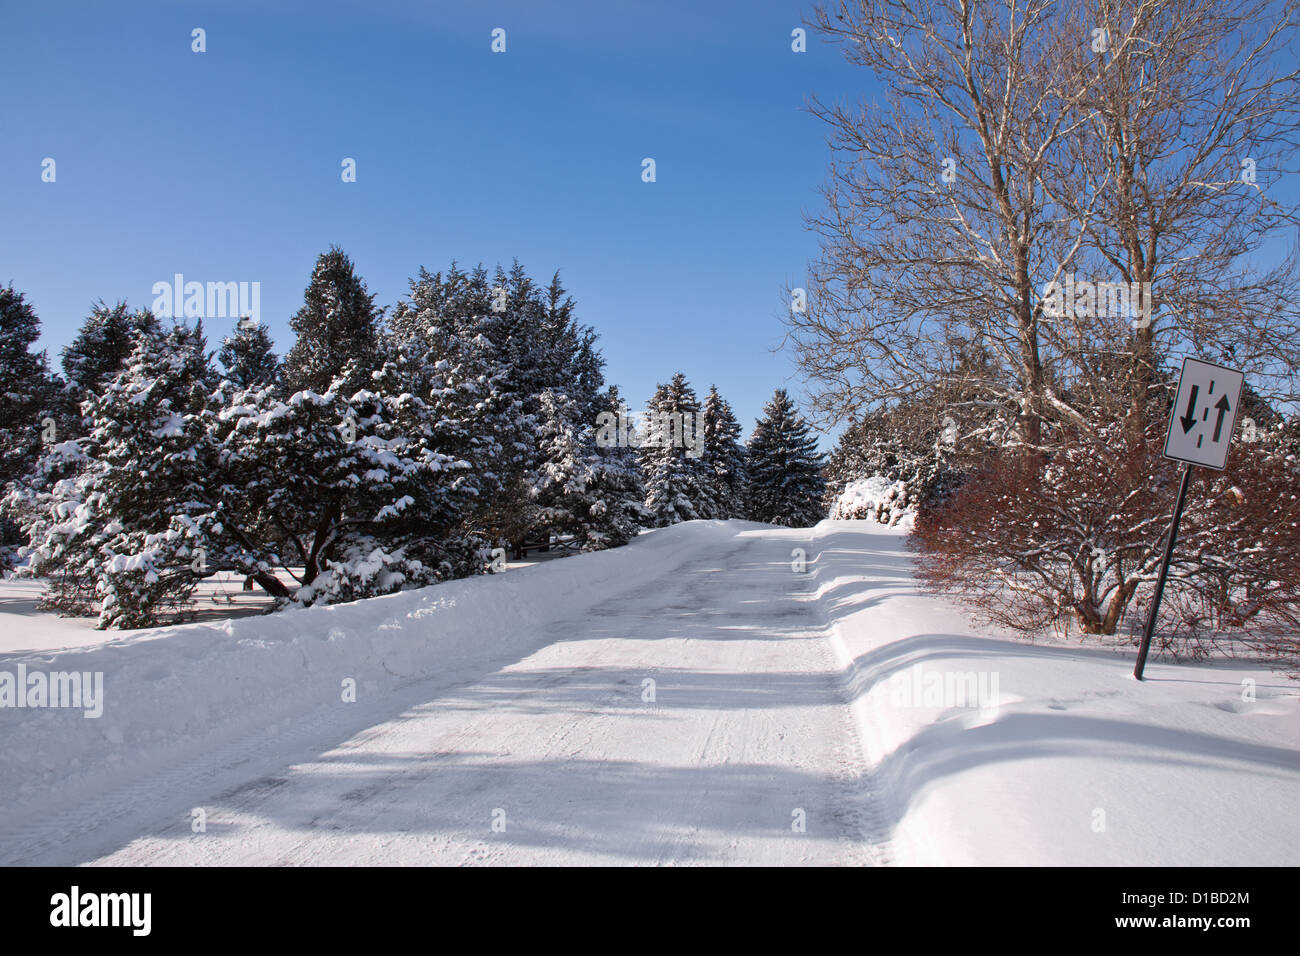 Winter landscape with a lot of snow and a road who cut the forest and a two way traffic sign Stock Photo